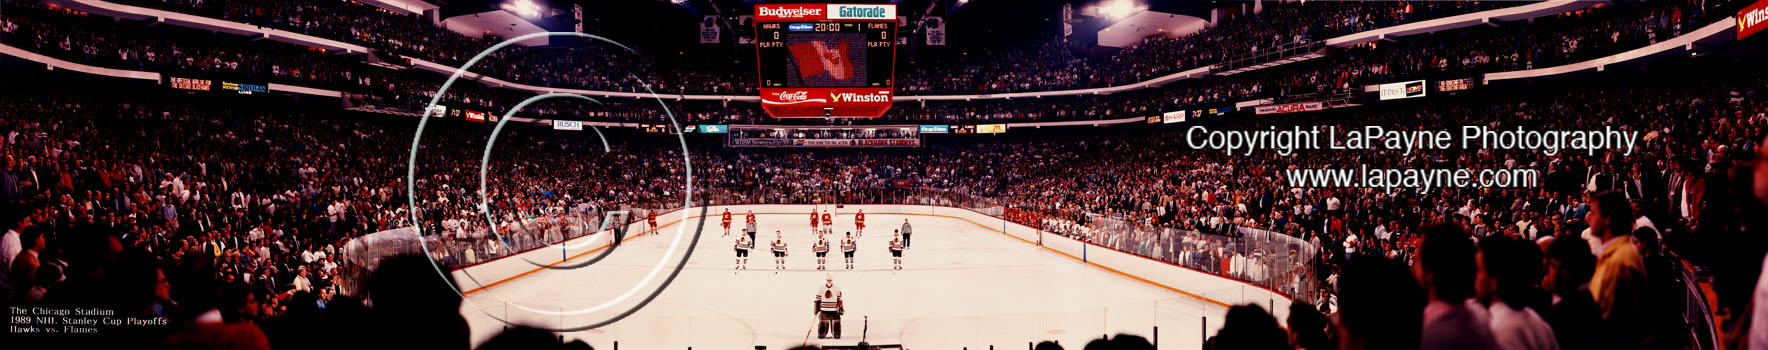 NHL 1989 Stanley Cup Playoffs Panorama